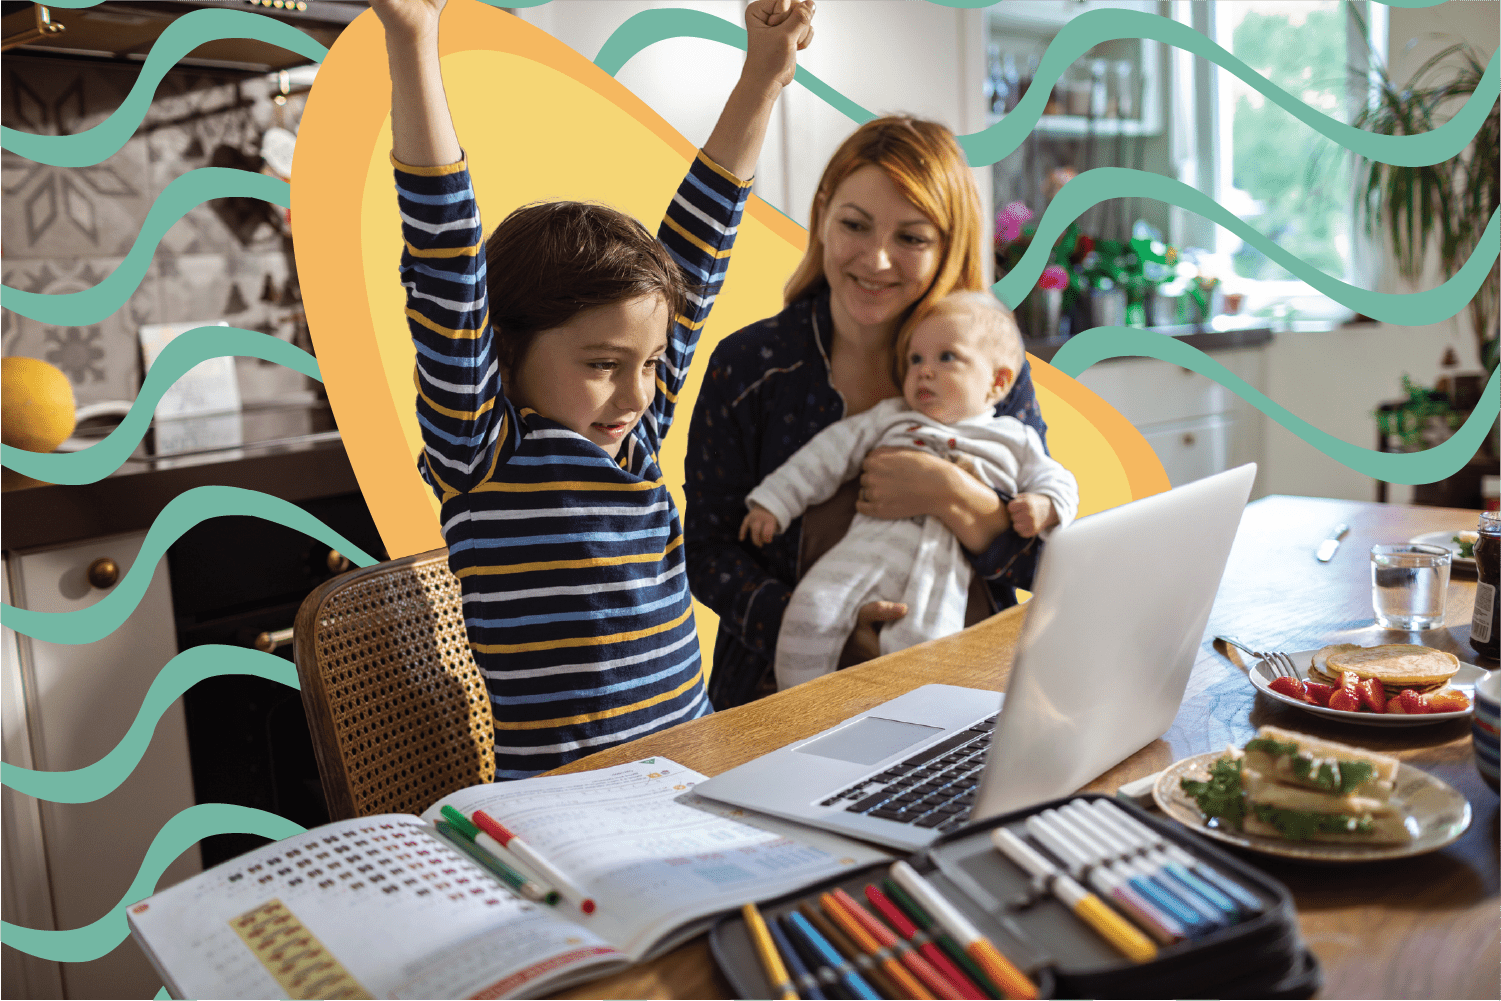 Child cheering in front of computer with mother over his shoulder